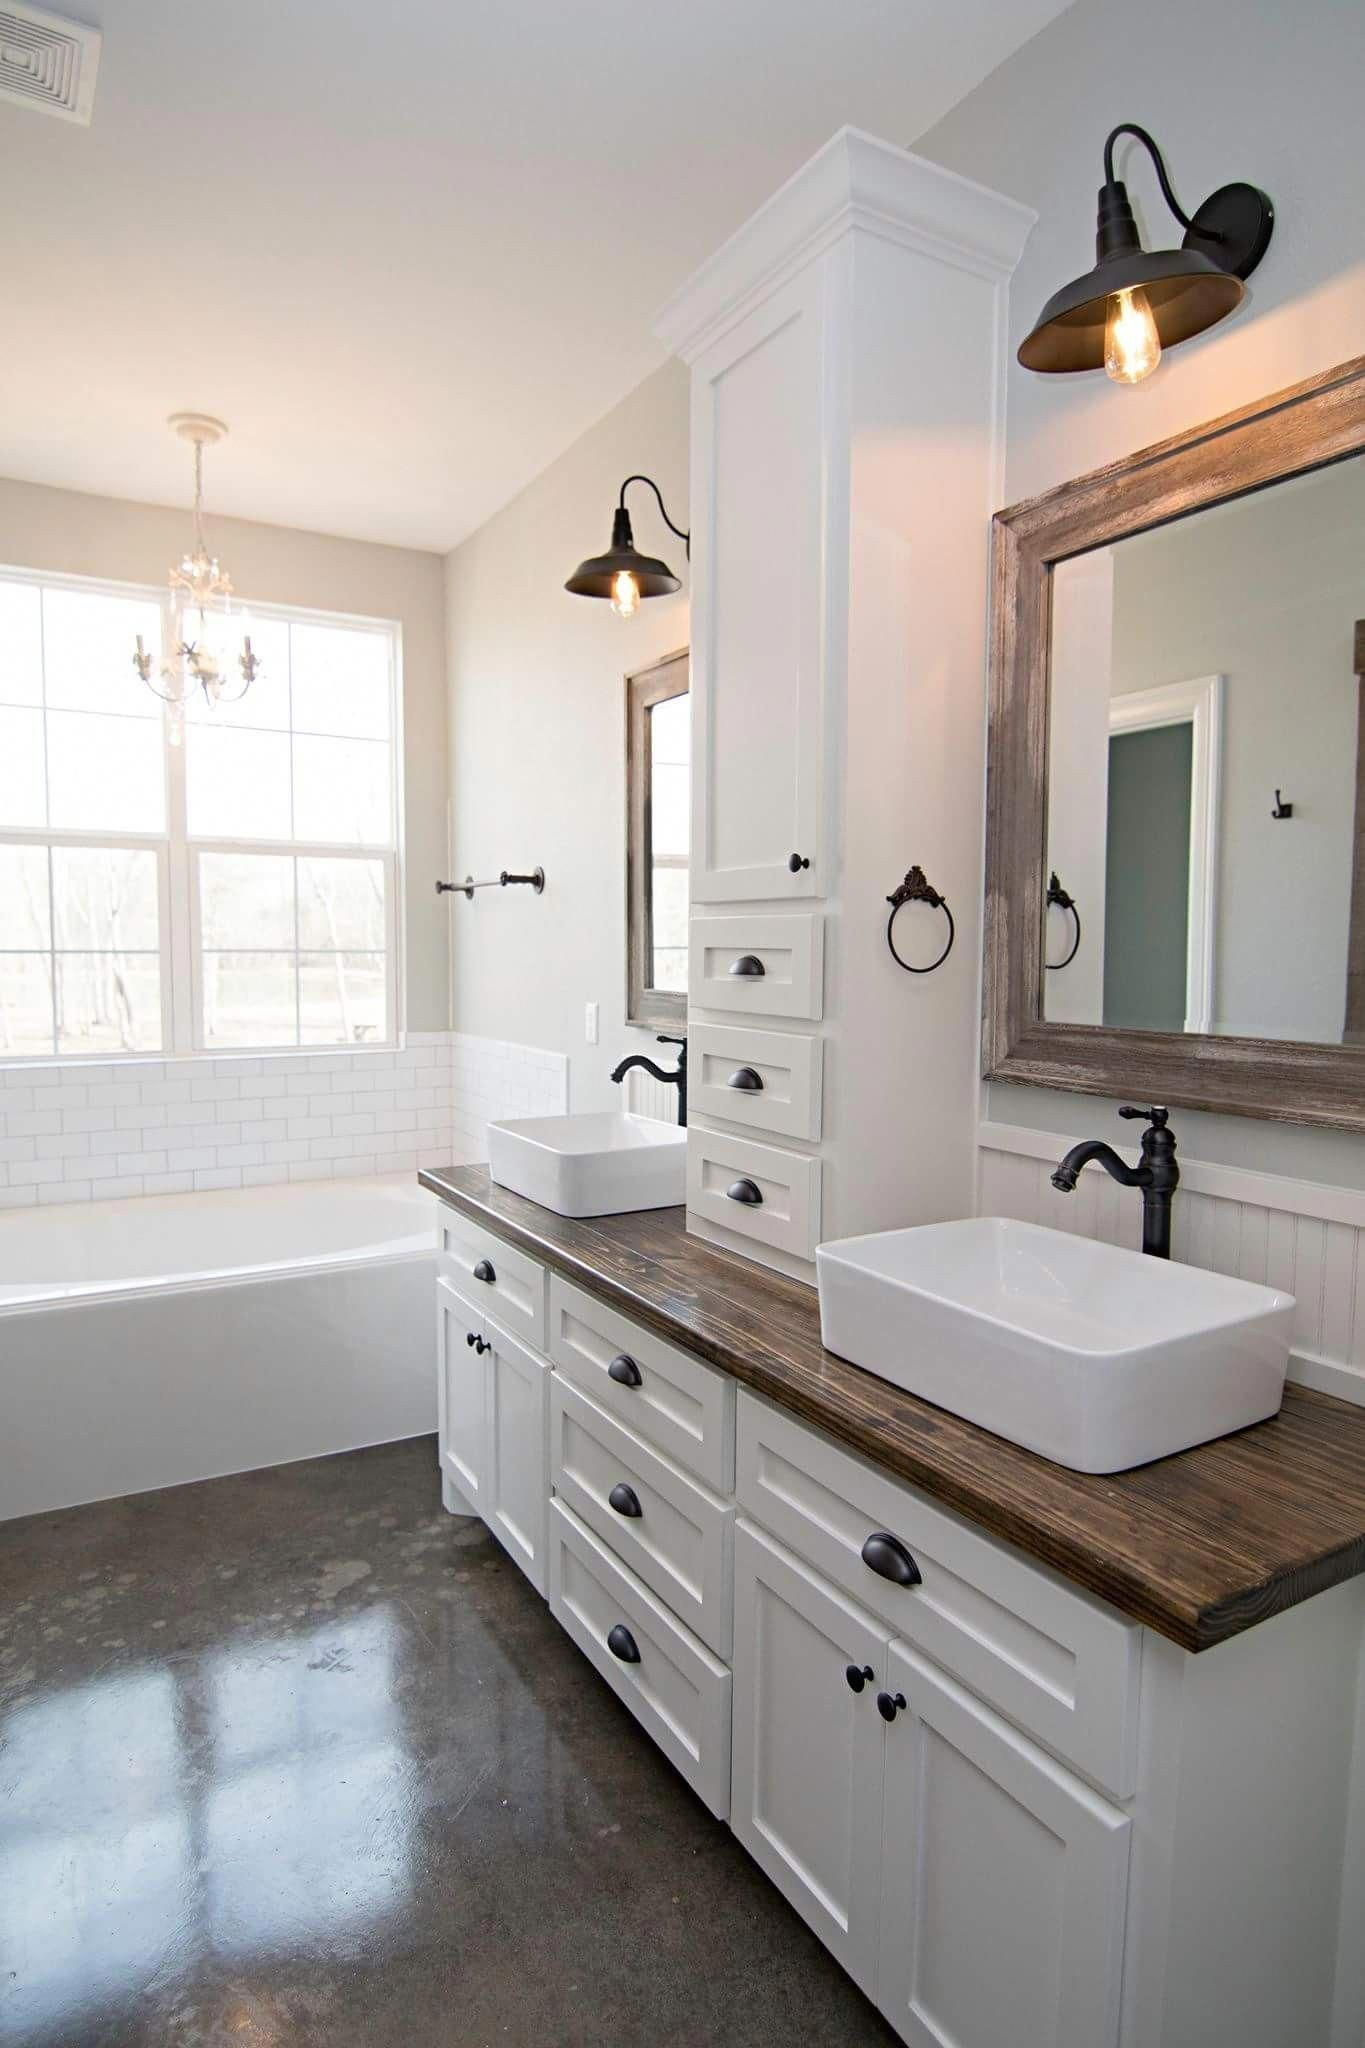 Photo of √ 10+ Most Beautiful Master Bathroom Ideas That Are Worth Checking For #modernfarmhouse